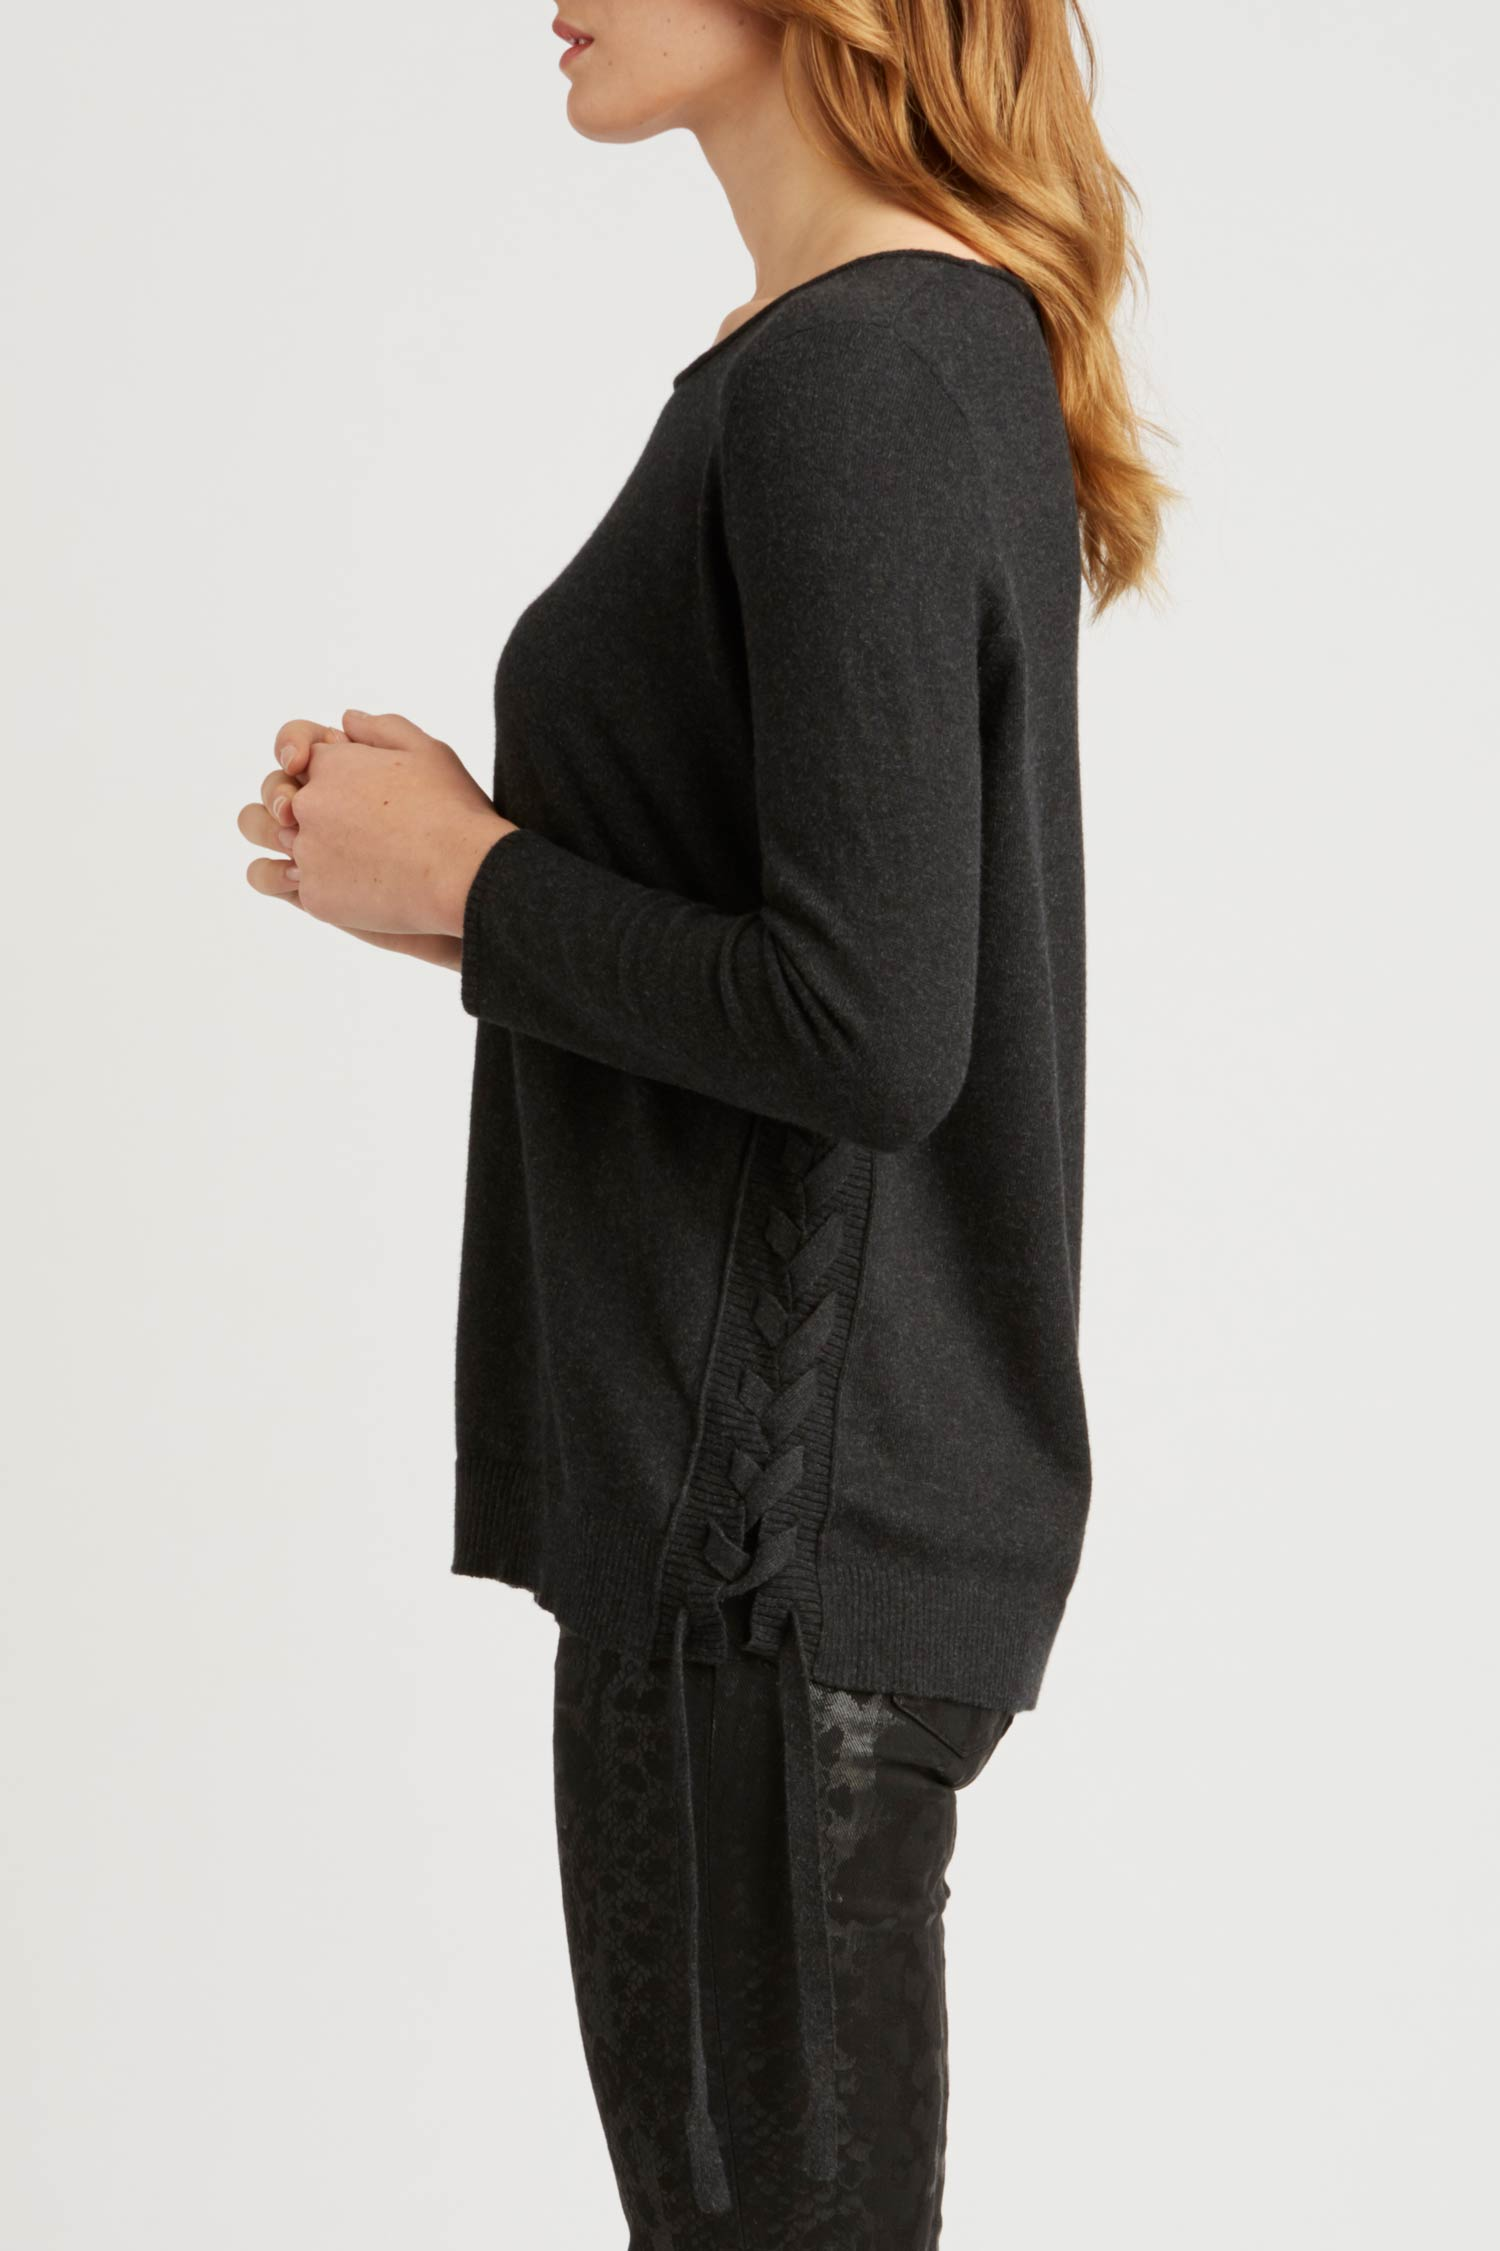 Womens Side Lace Up Pullover Sweater in Black | Slow Fashion Knit